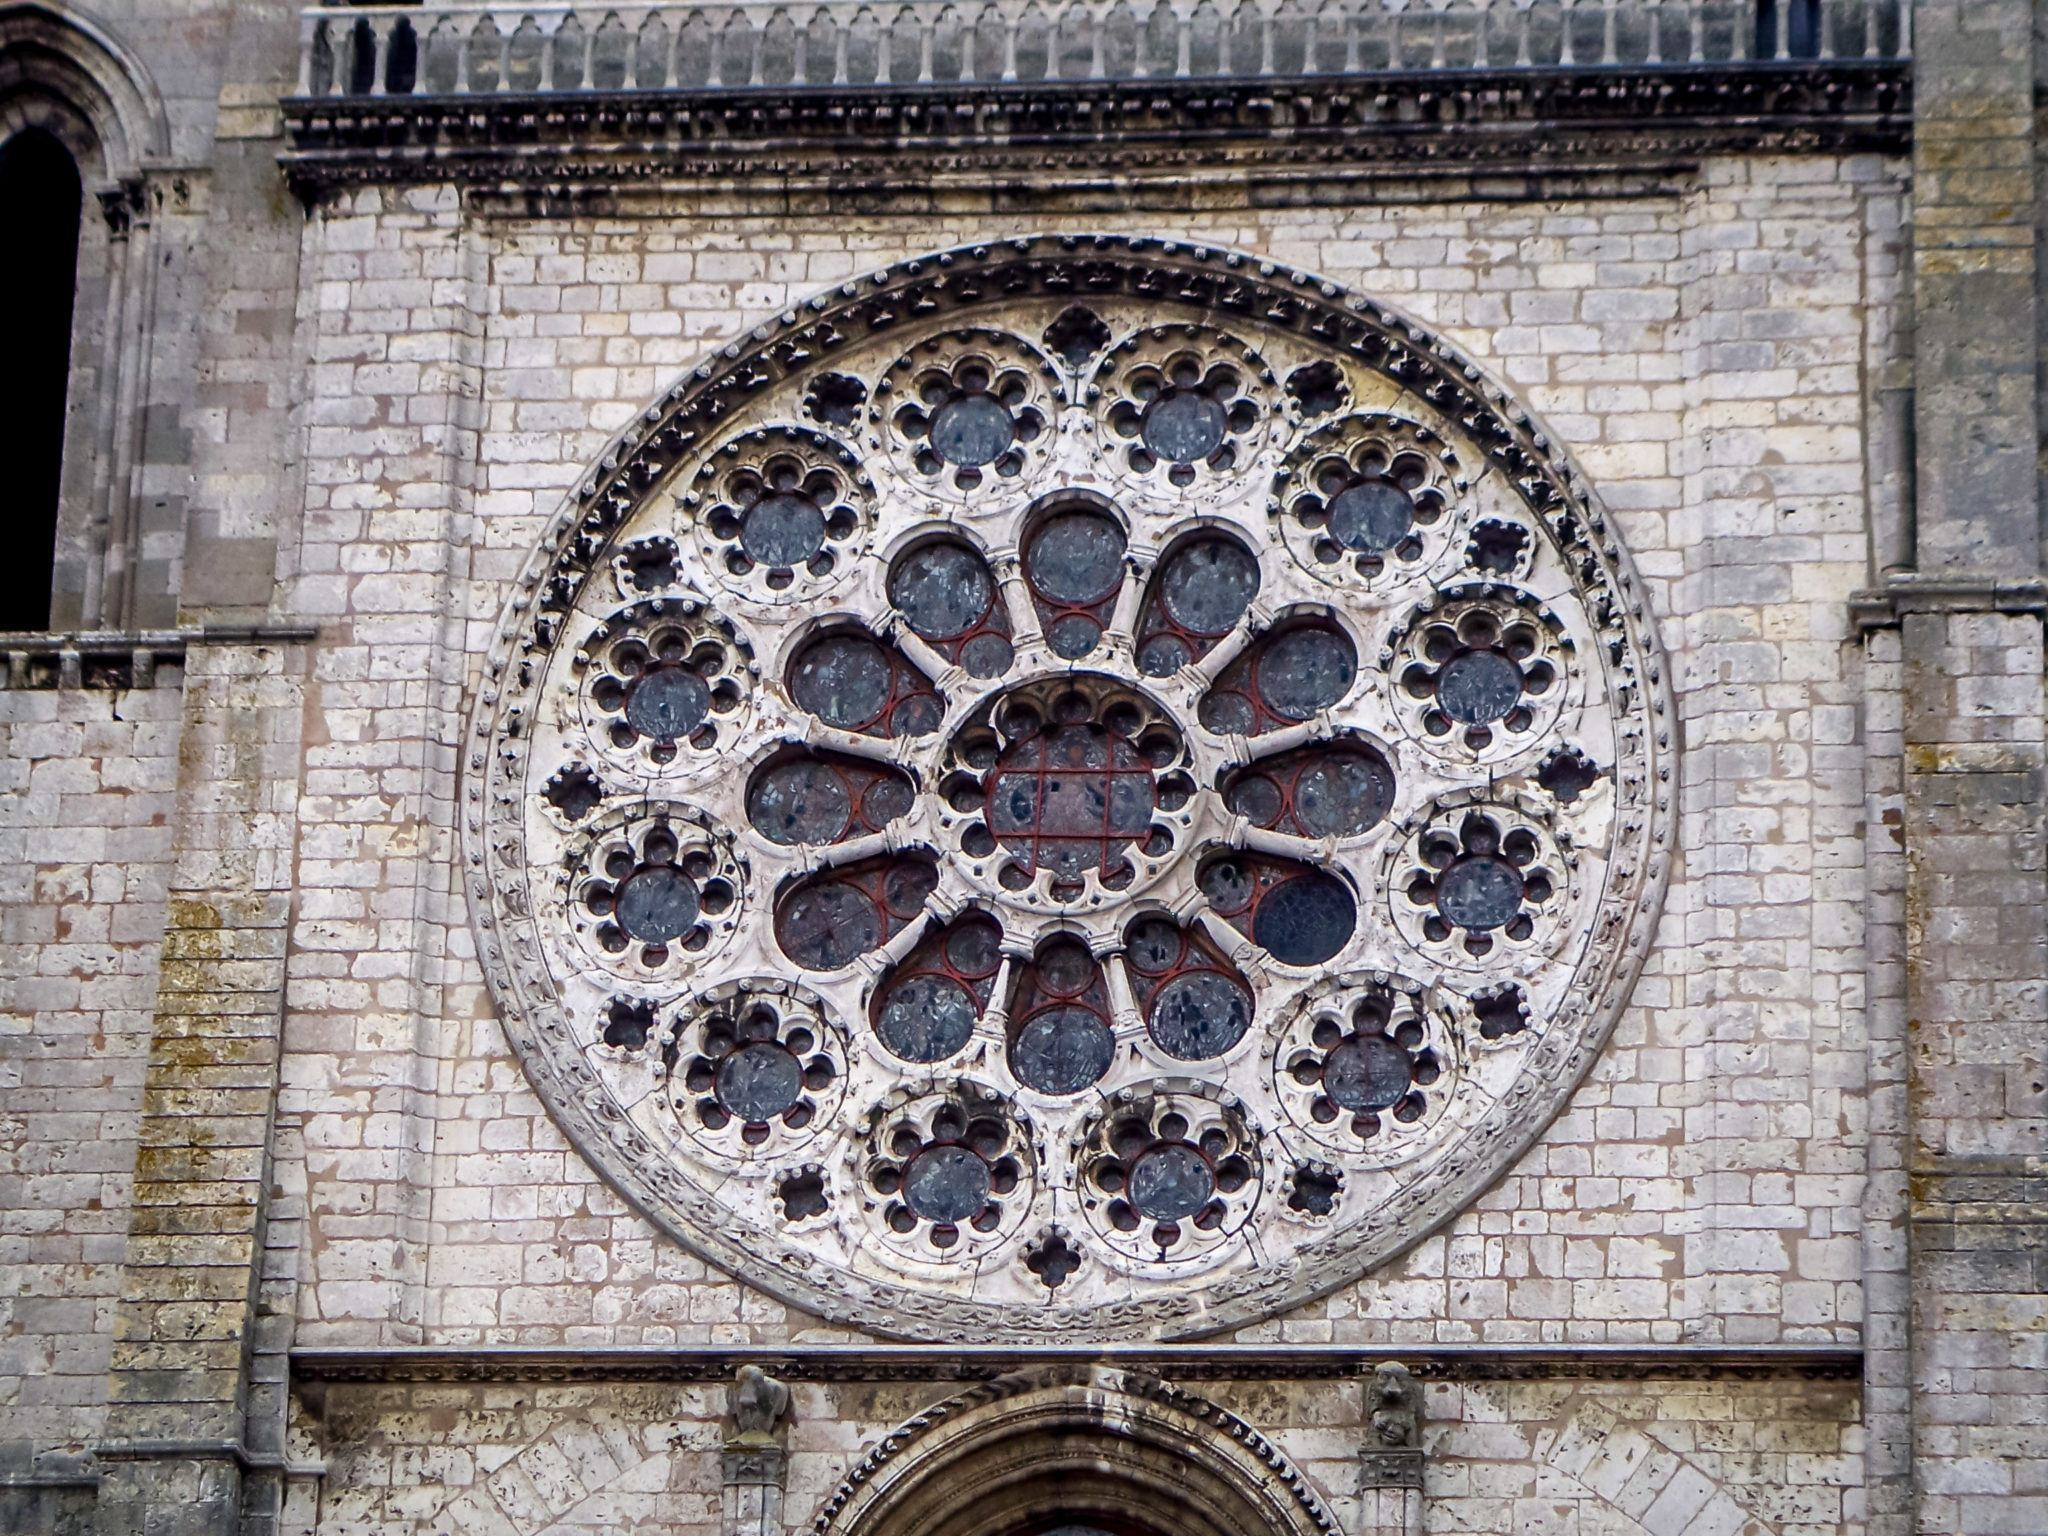 Stained glass window at Chartres Cathedral, a UNESCO World Heritage site in France